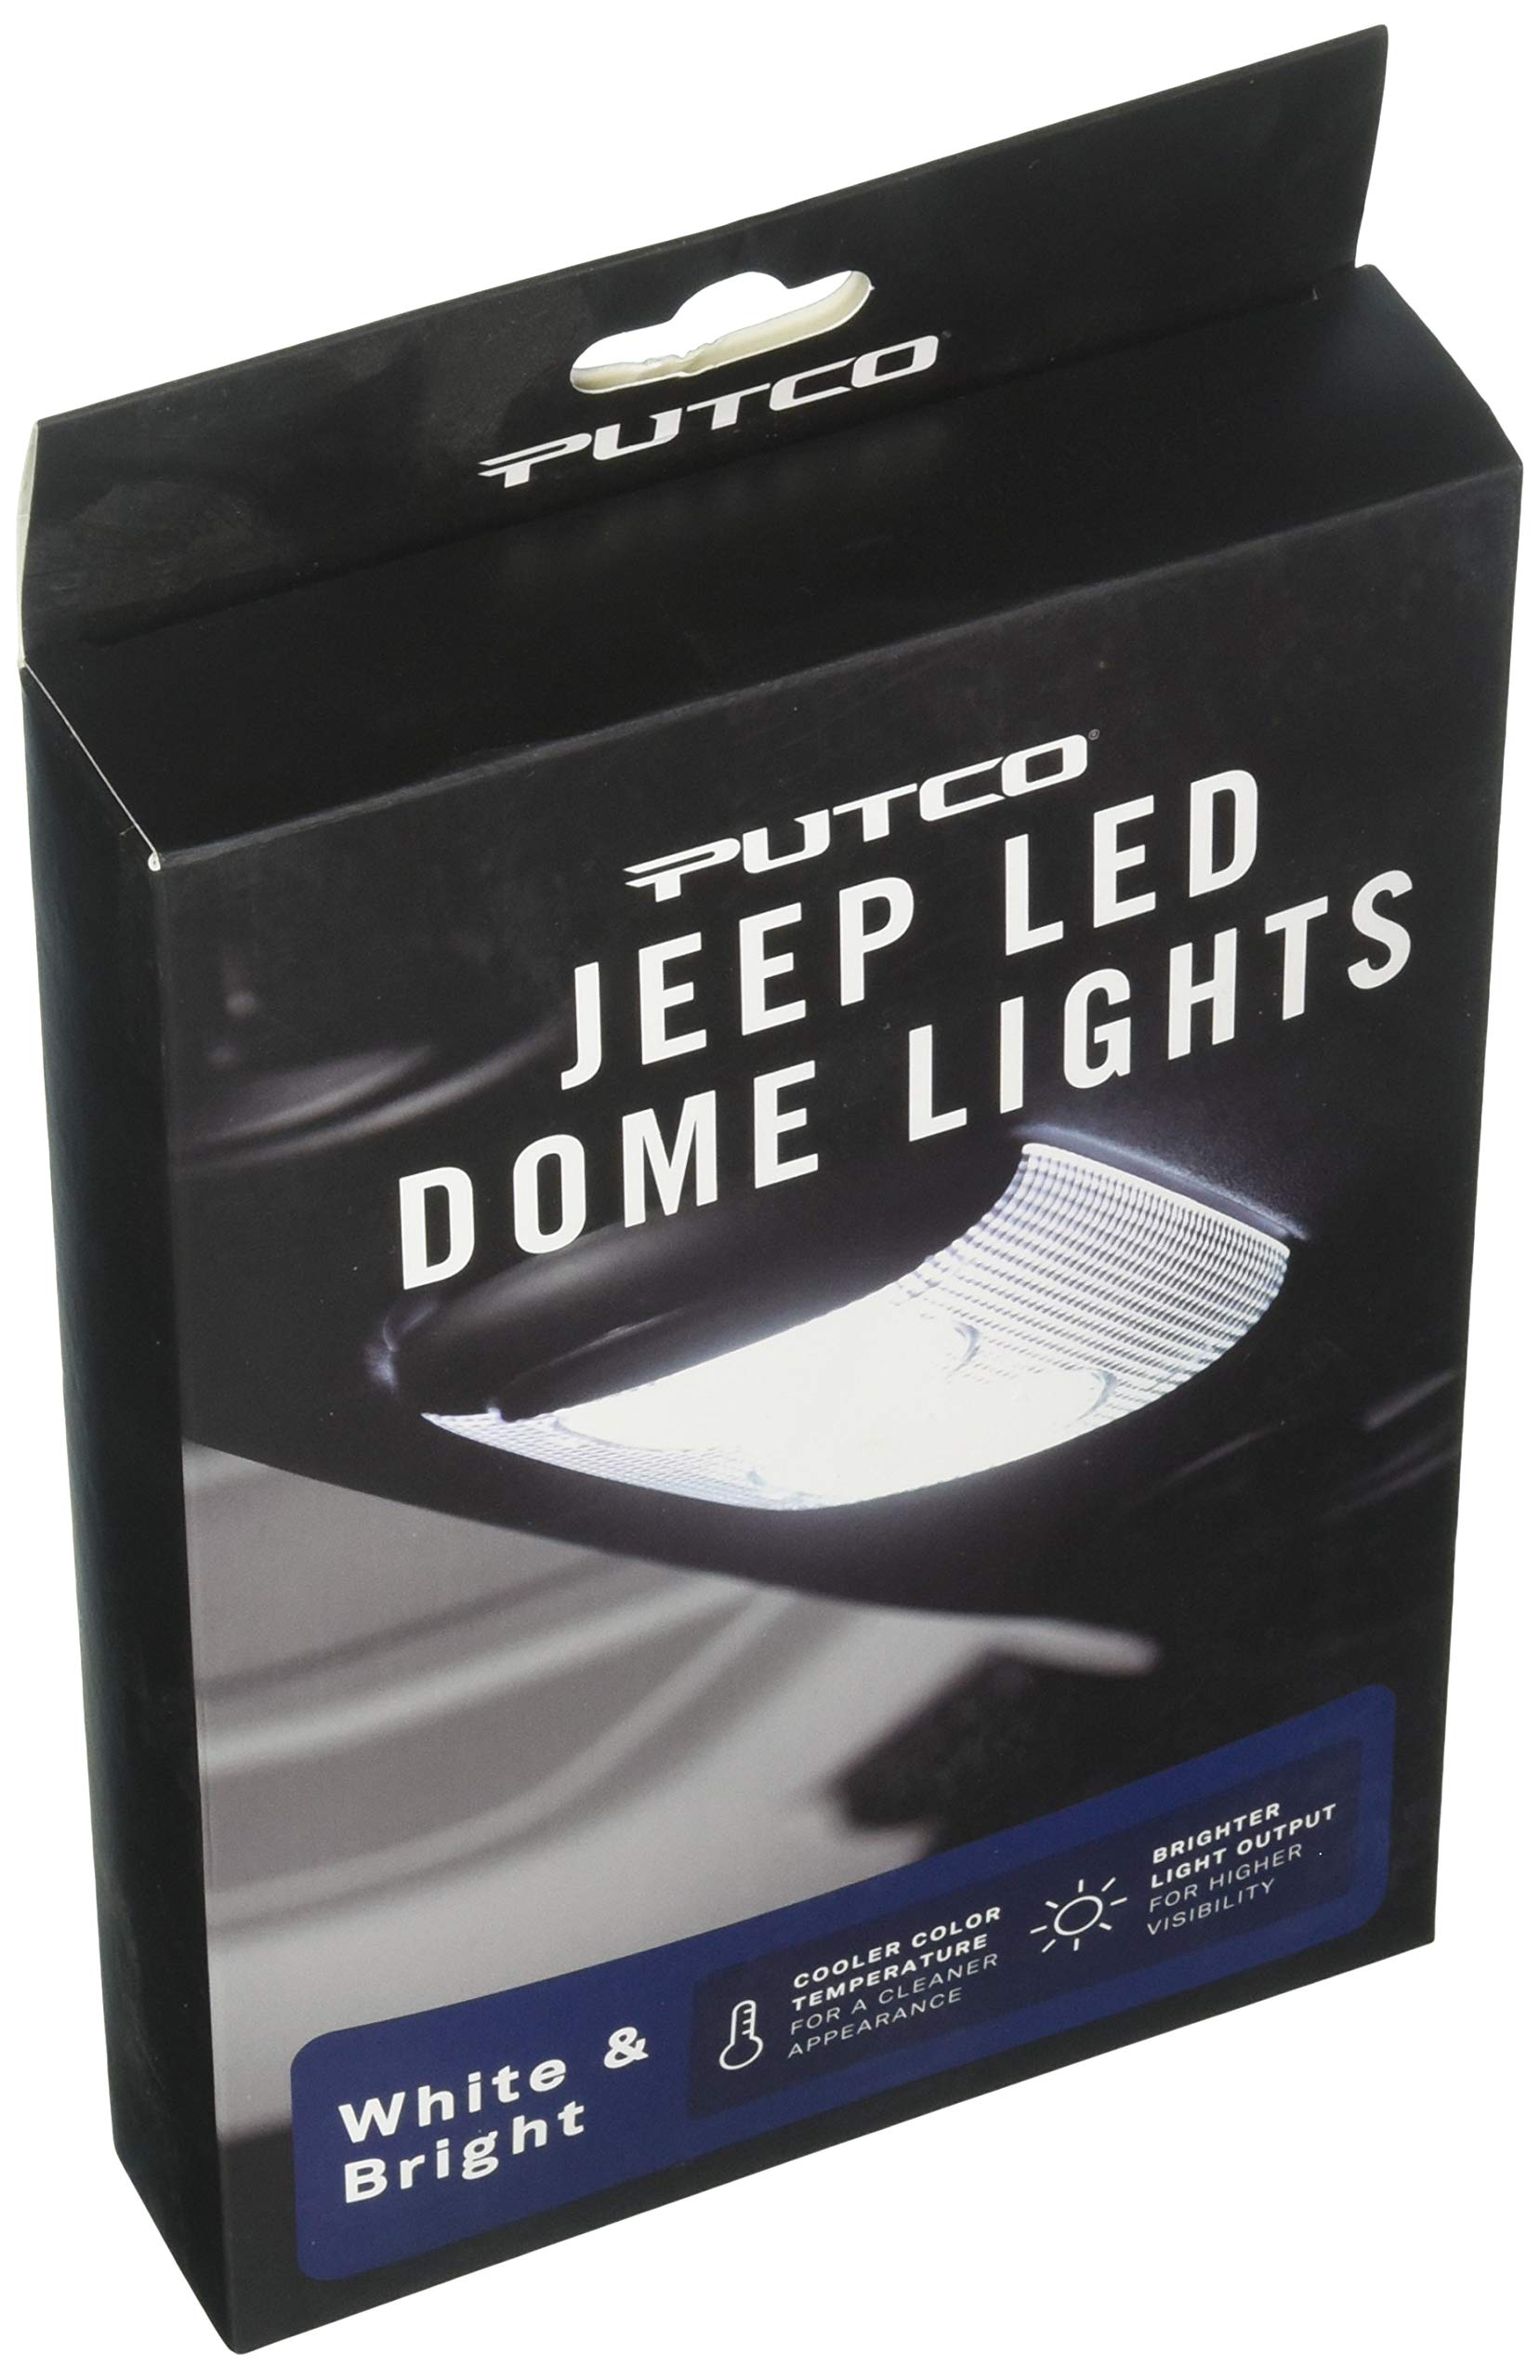 Putco 980295 Premium LED Dome Light Kit for Jeep Wrangler Unlimited